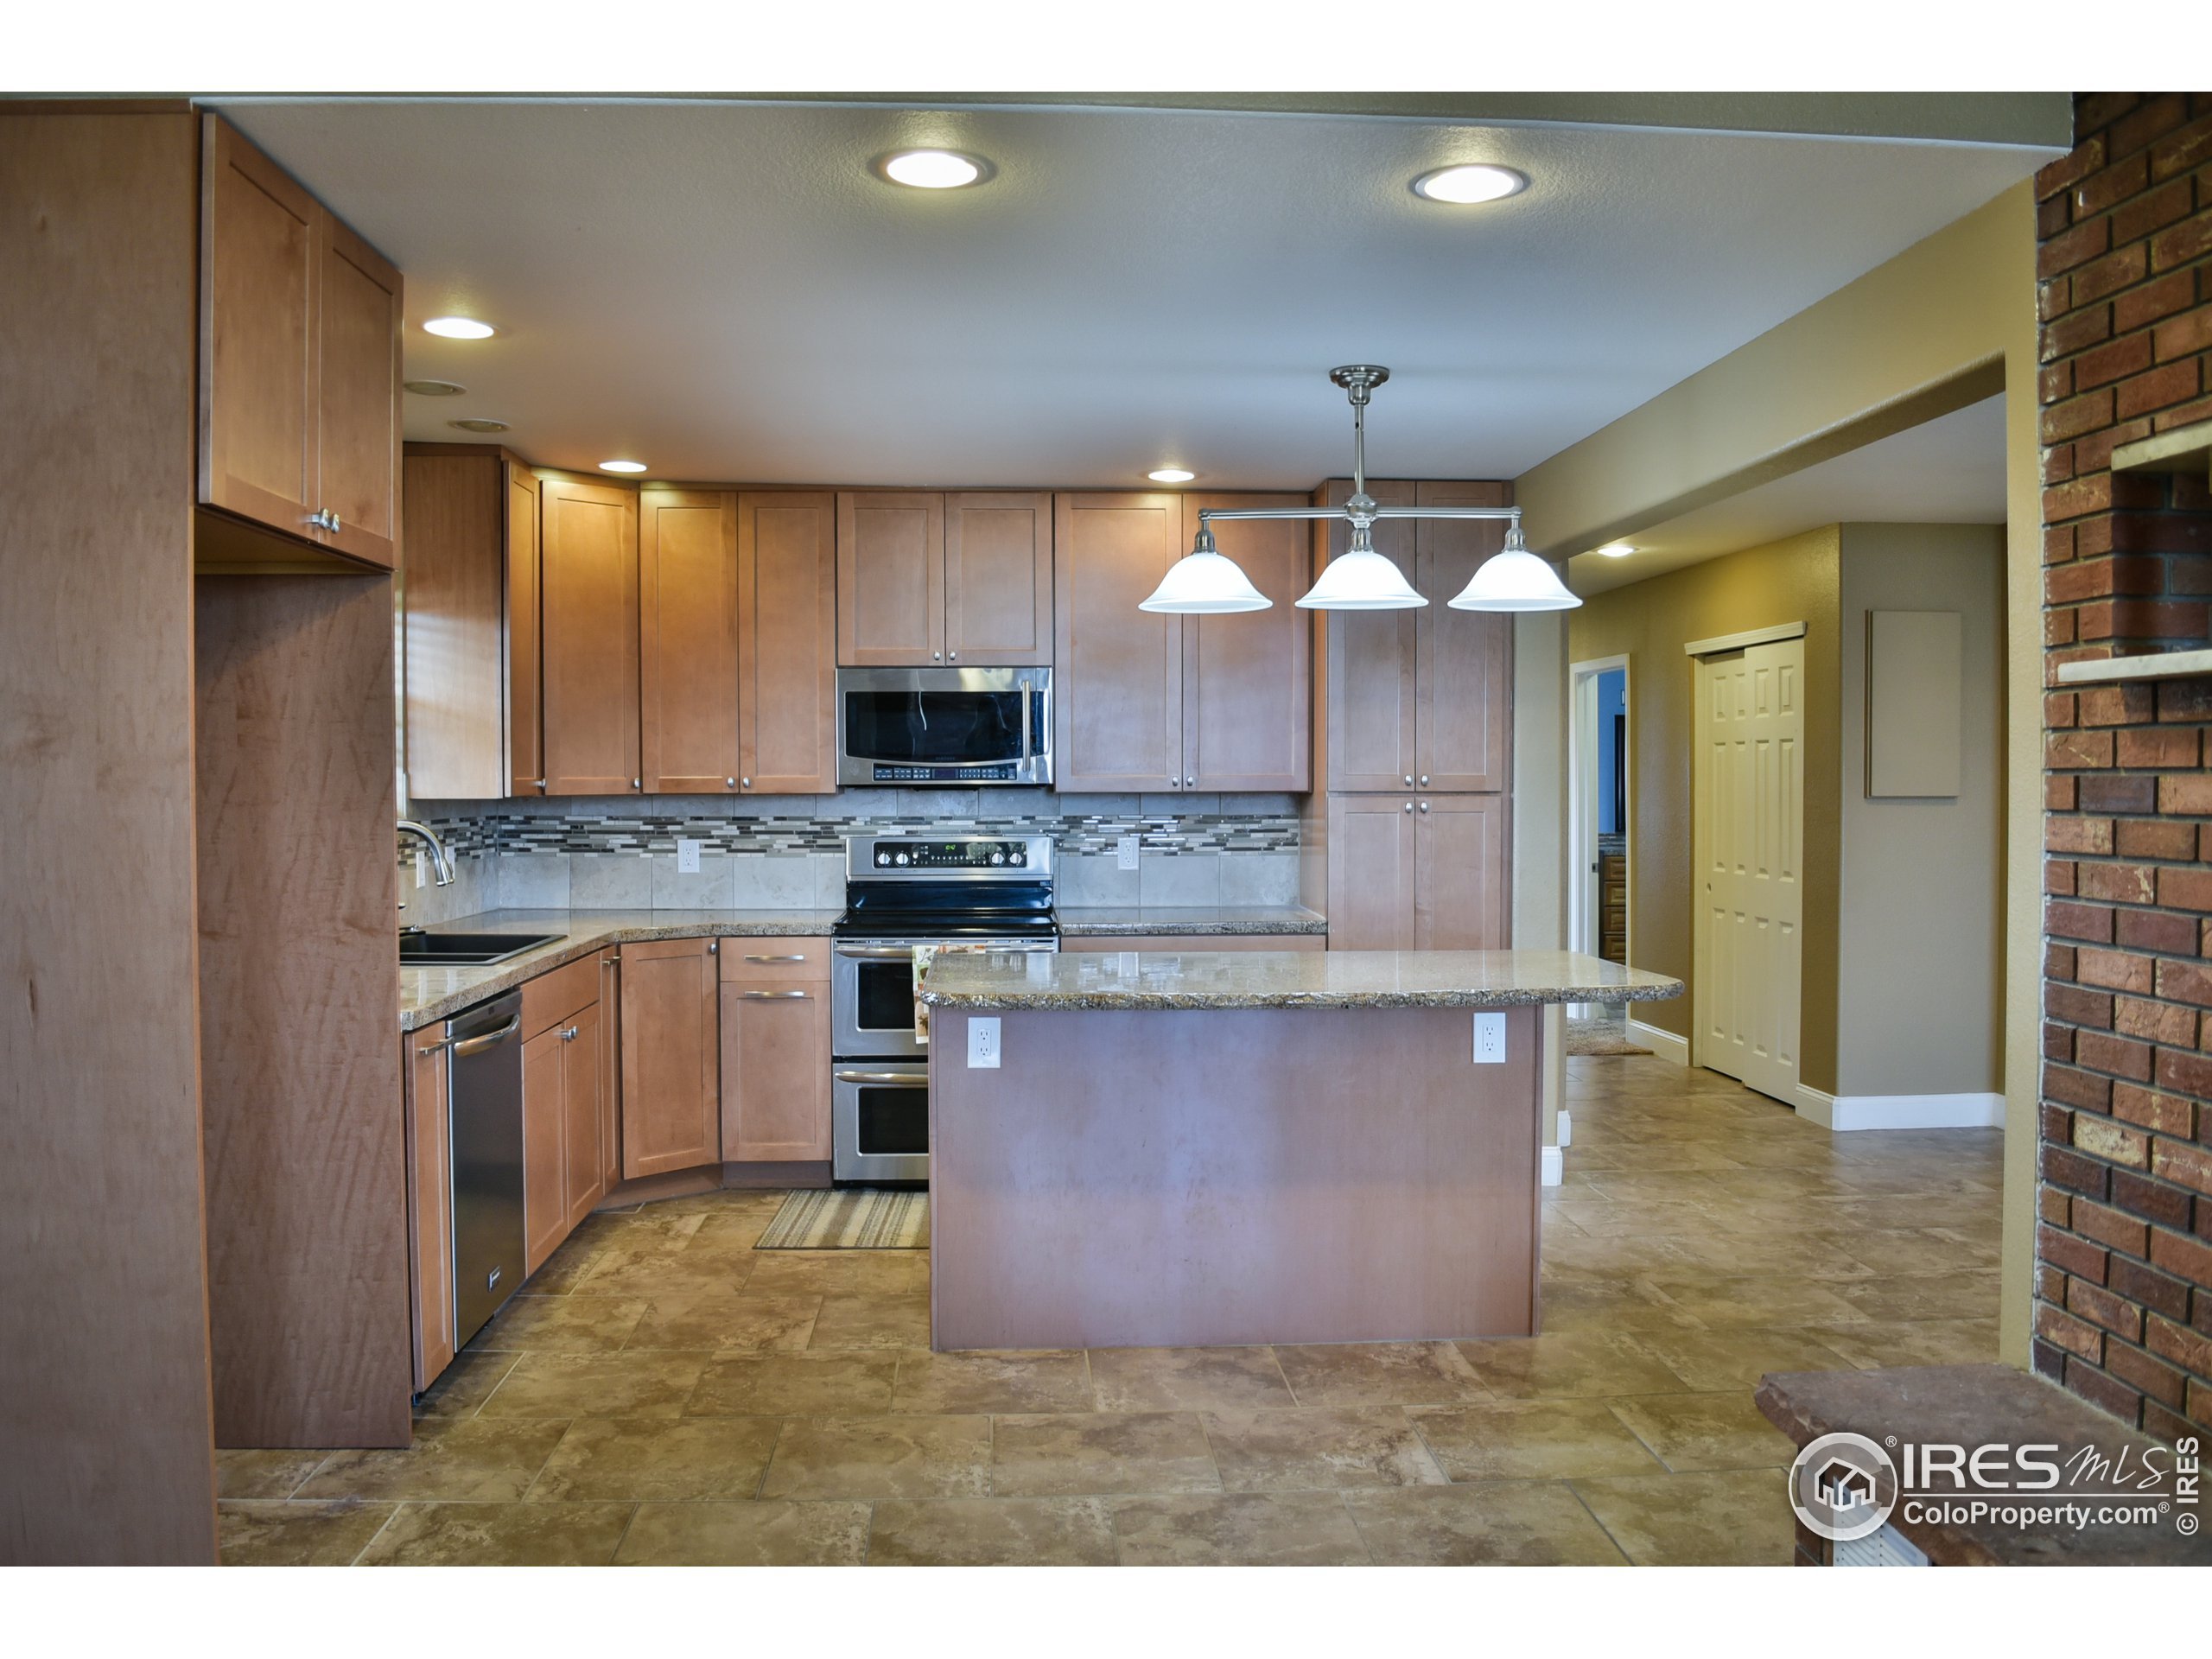 All wood cabinets in Kitchen.